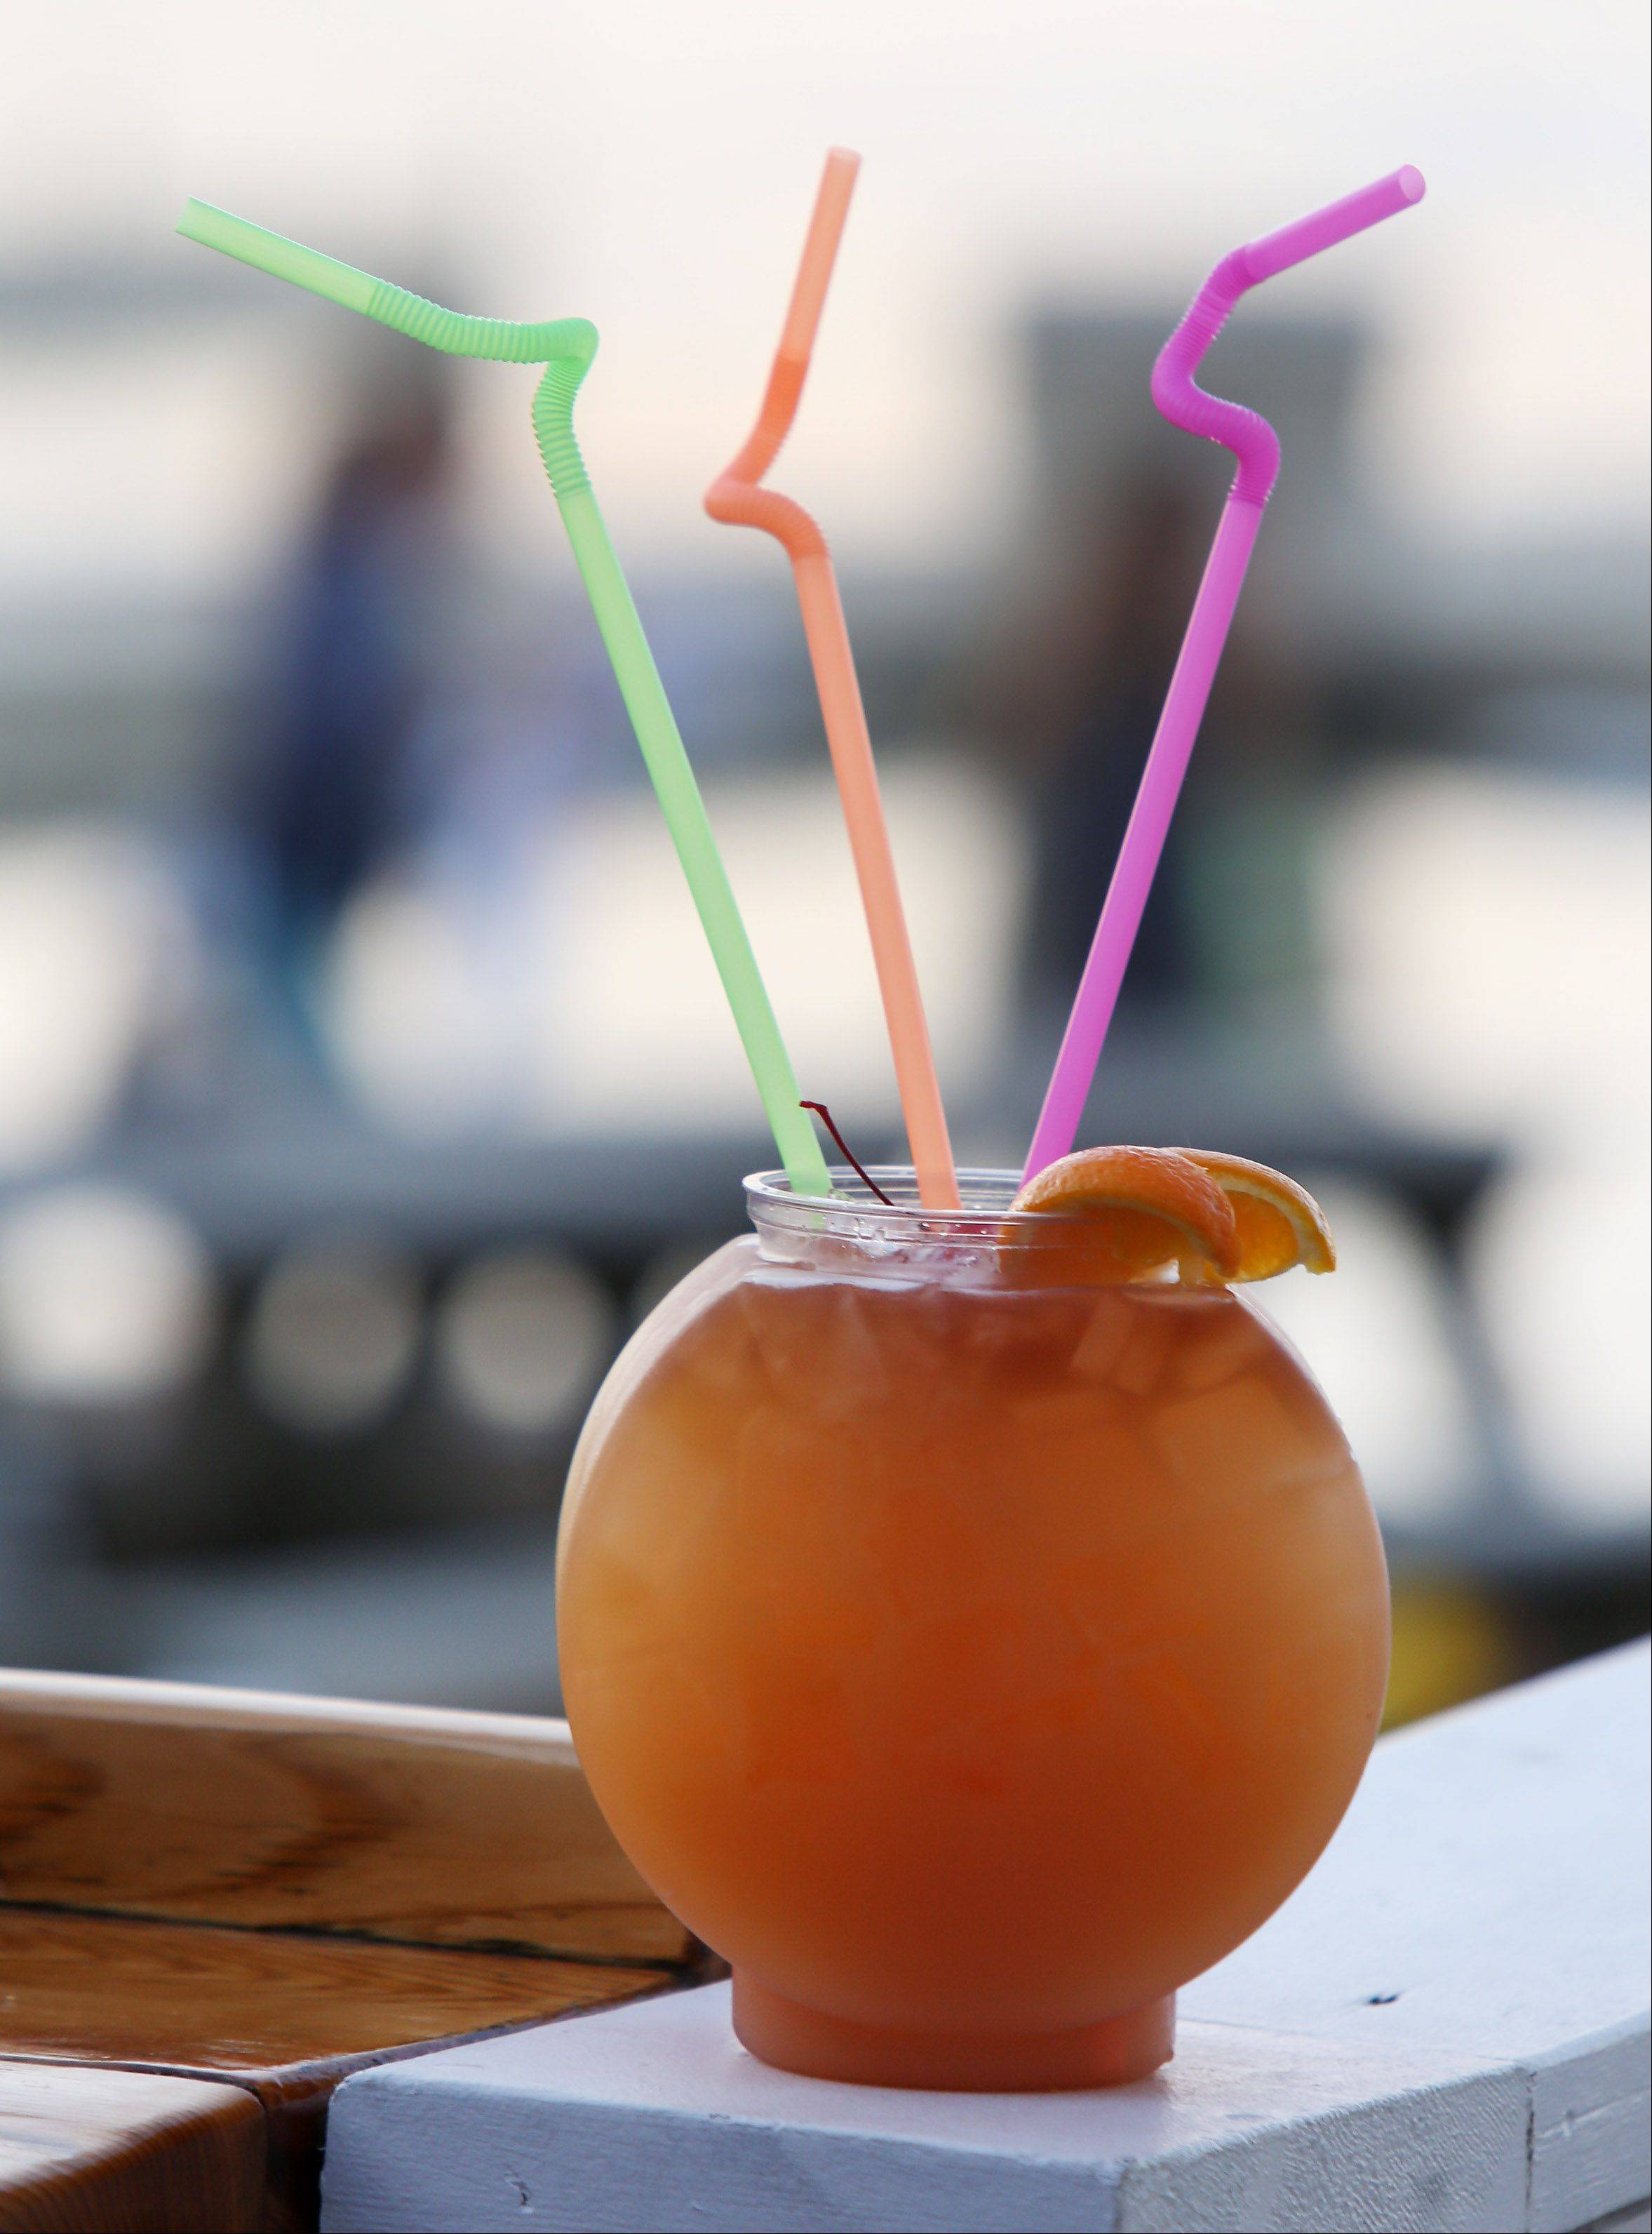 The mai tai fishbowl seems a perfect drink for enjoying the water views at Lindy's Landing in Wauconda.